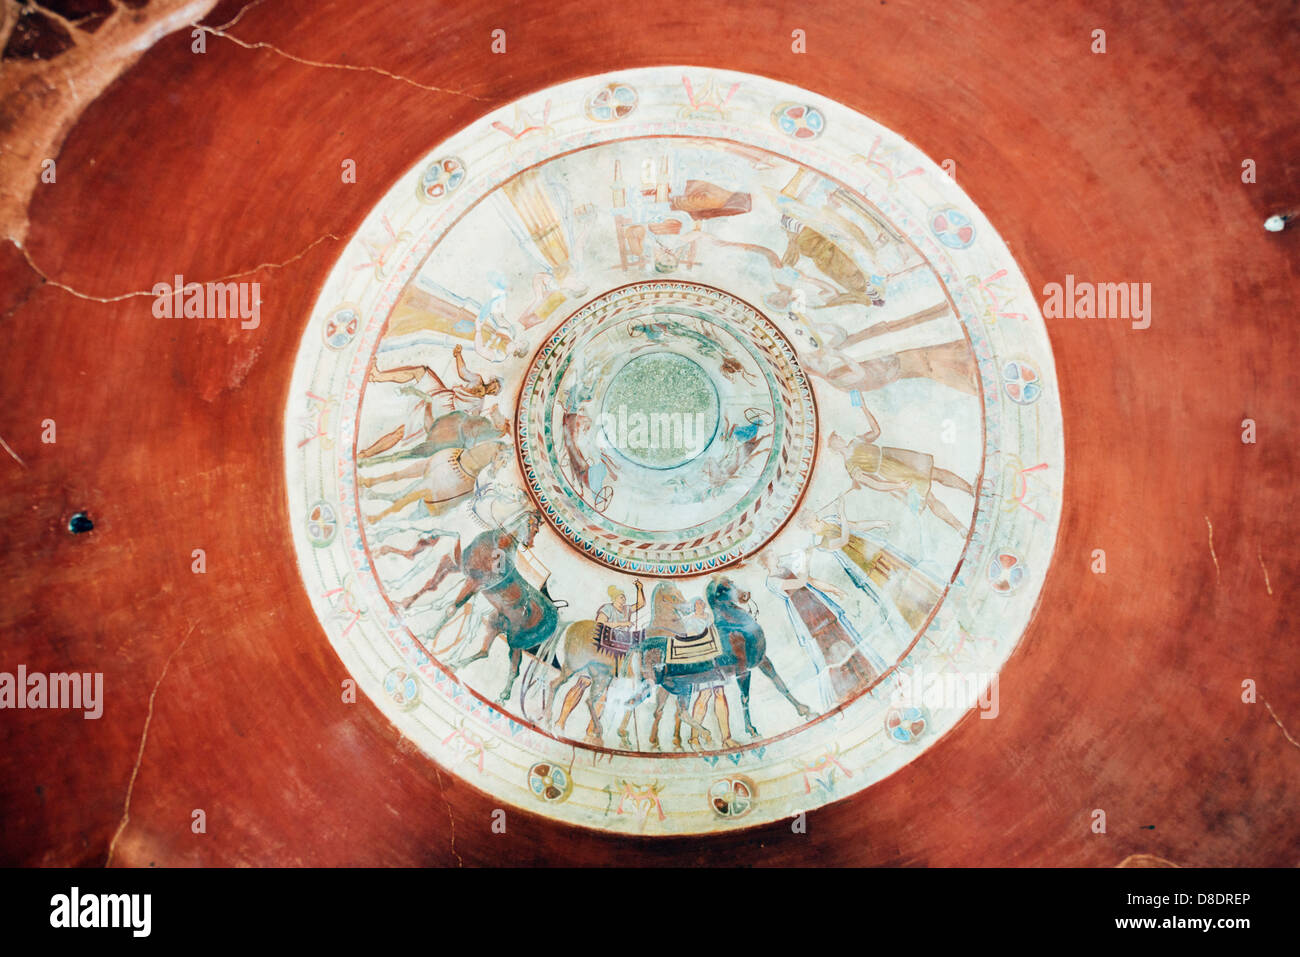 Europe, Bulgaria, Kazanlak; Thracian Tomb of Kazanlak (replica); Unesco World Heritage Site - Stock Image